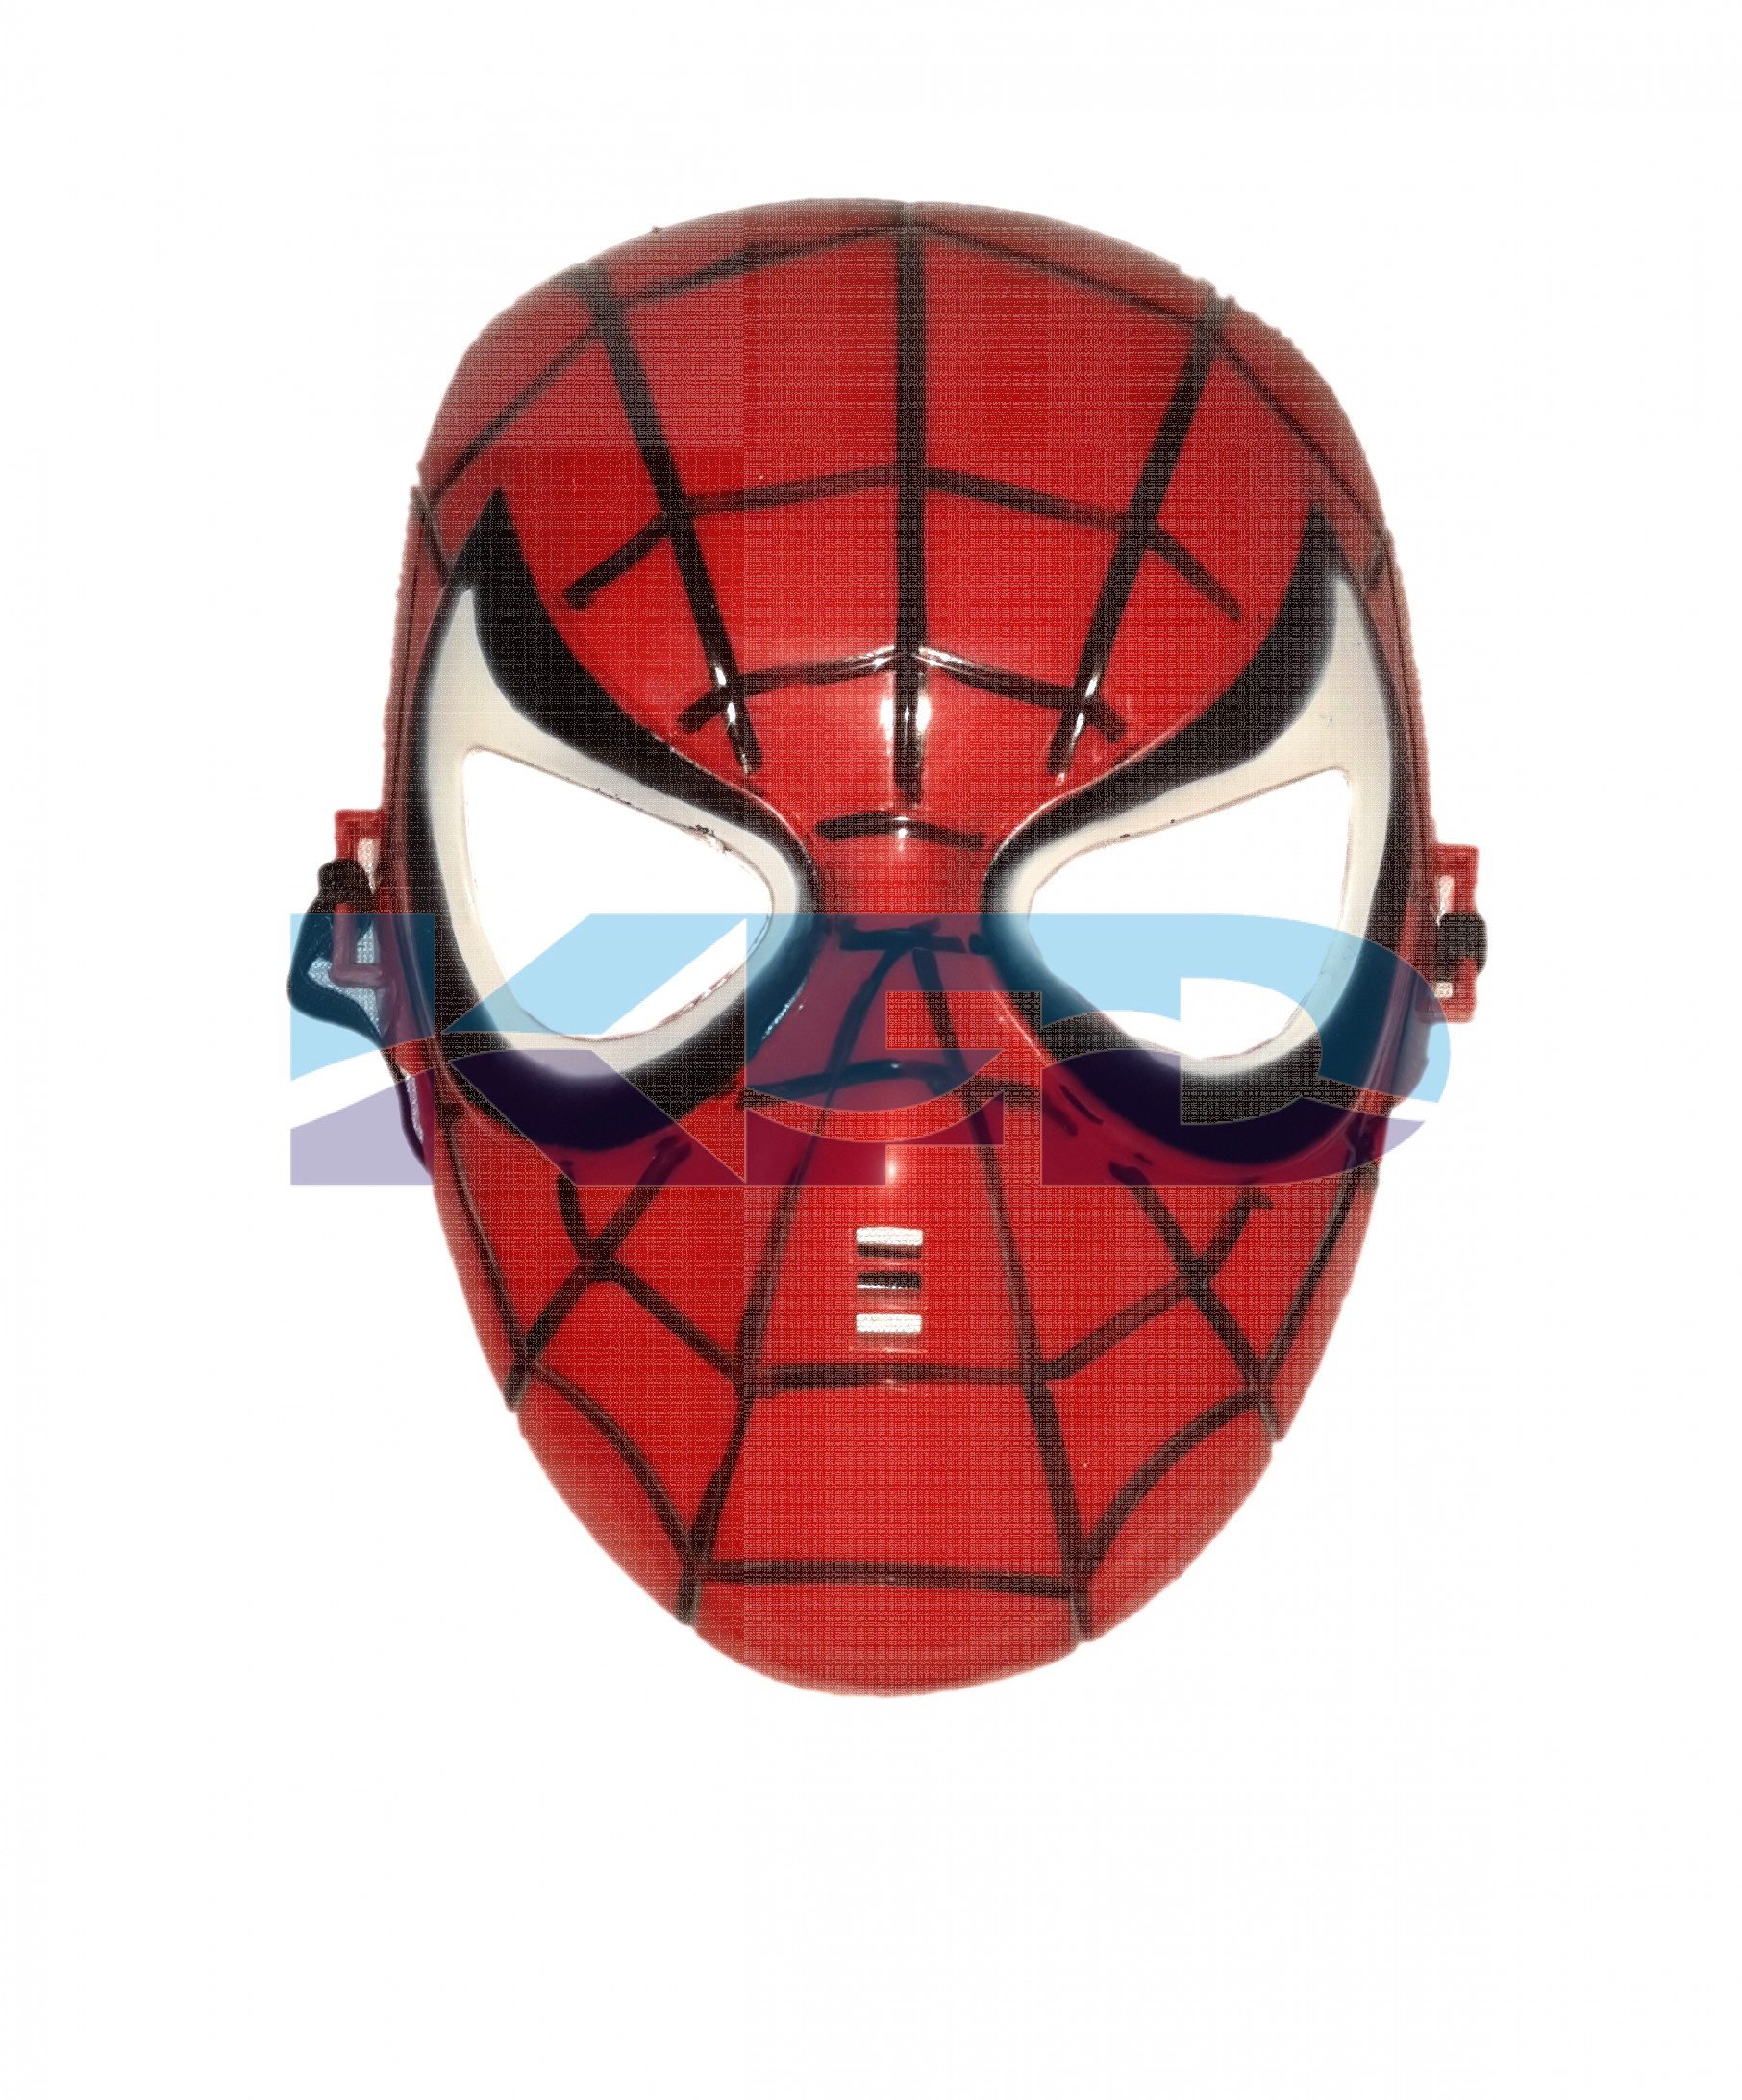 Spiderman Face Accessories for kids, Boys and Girls